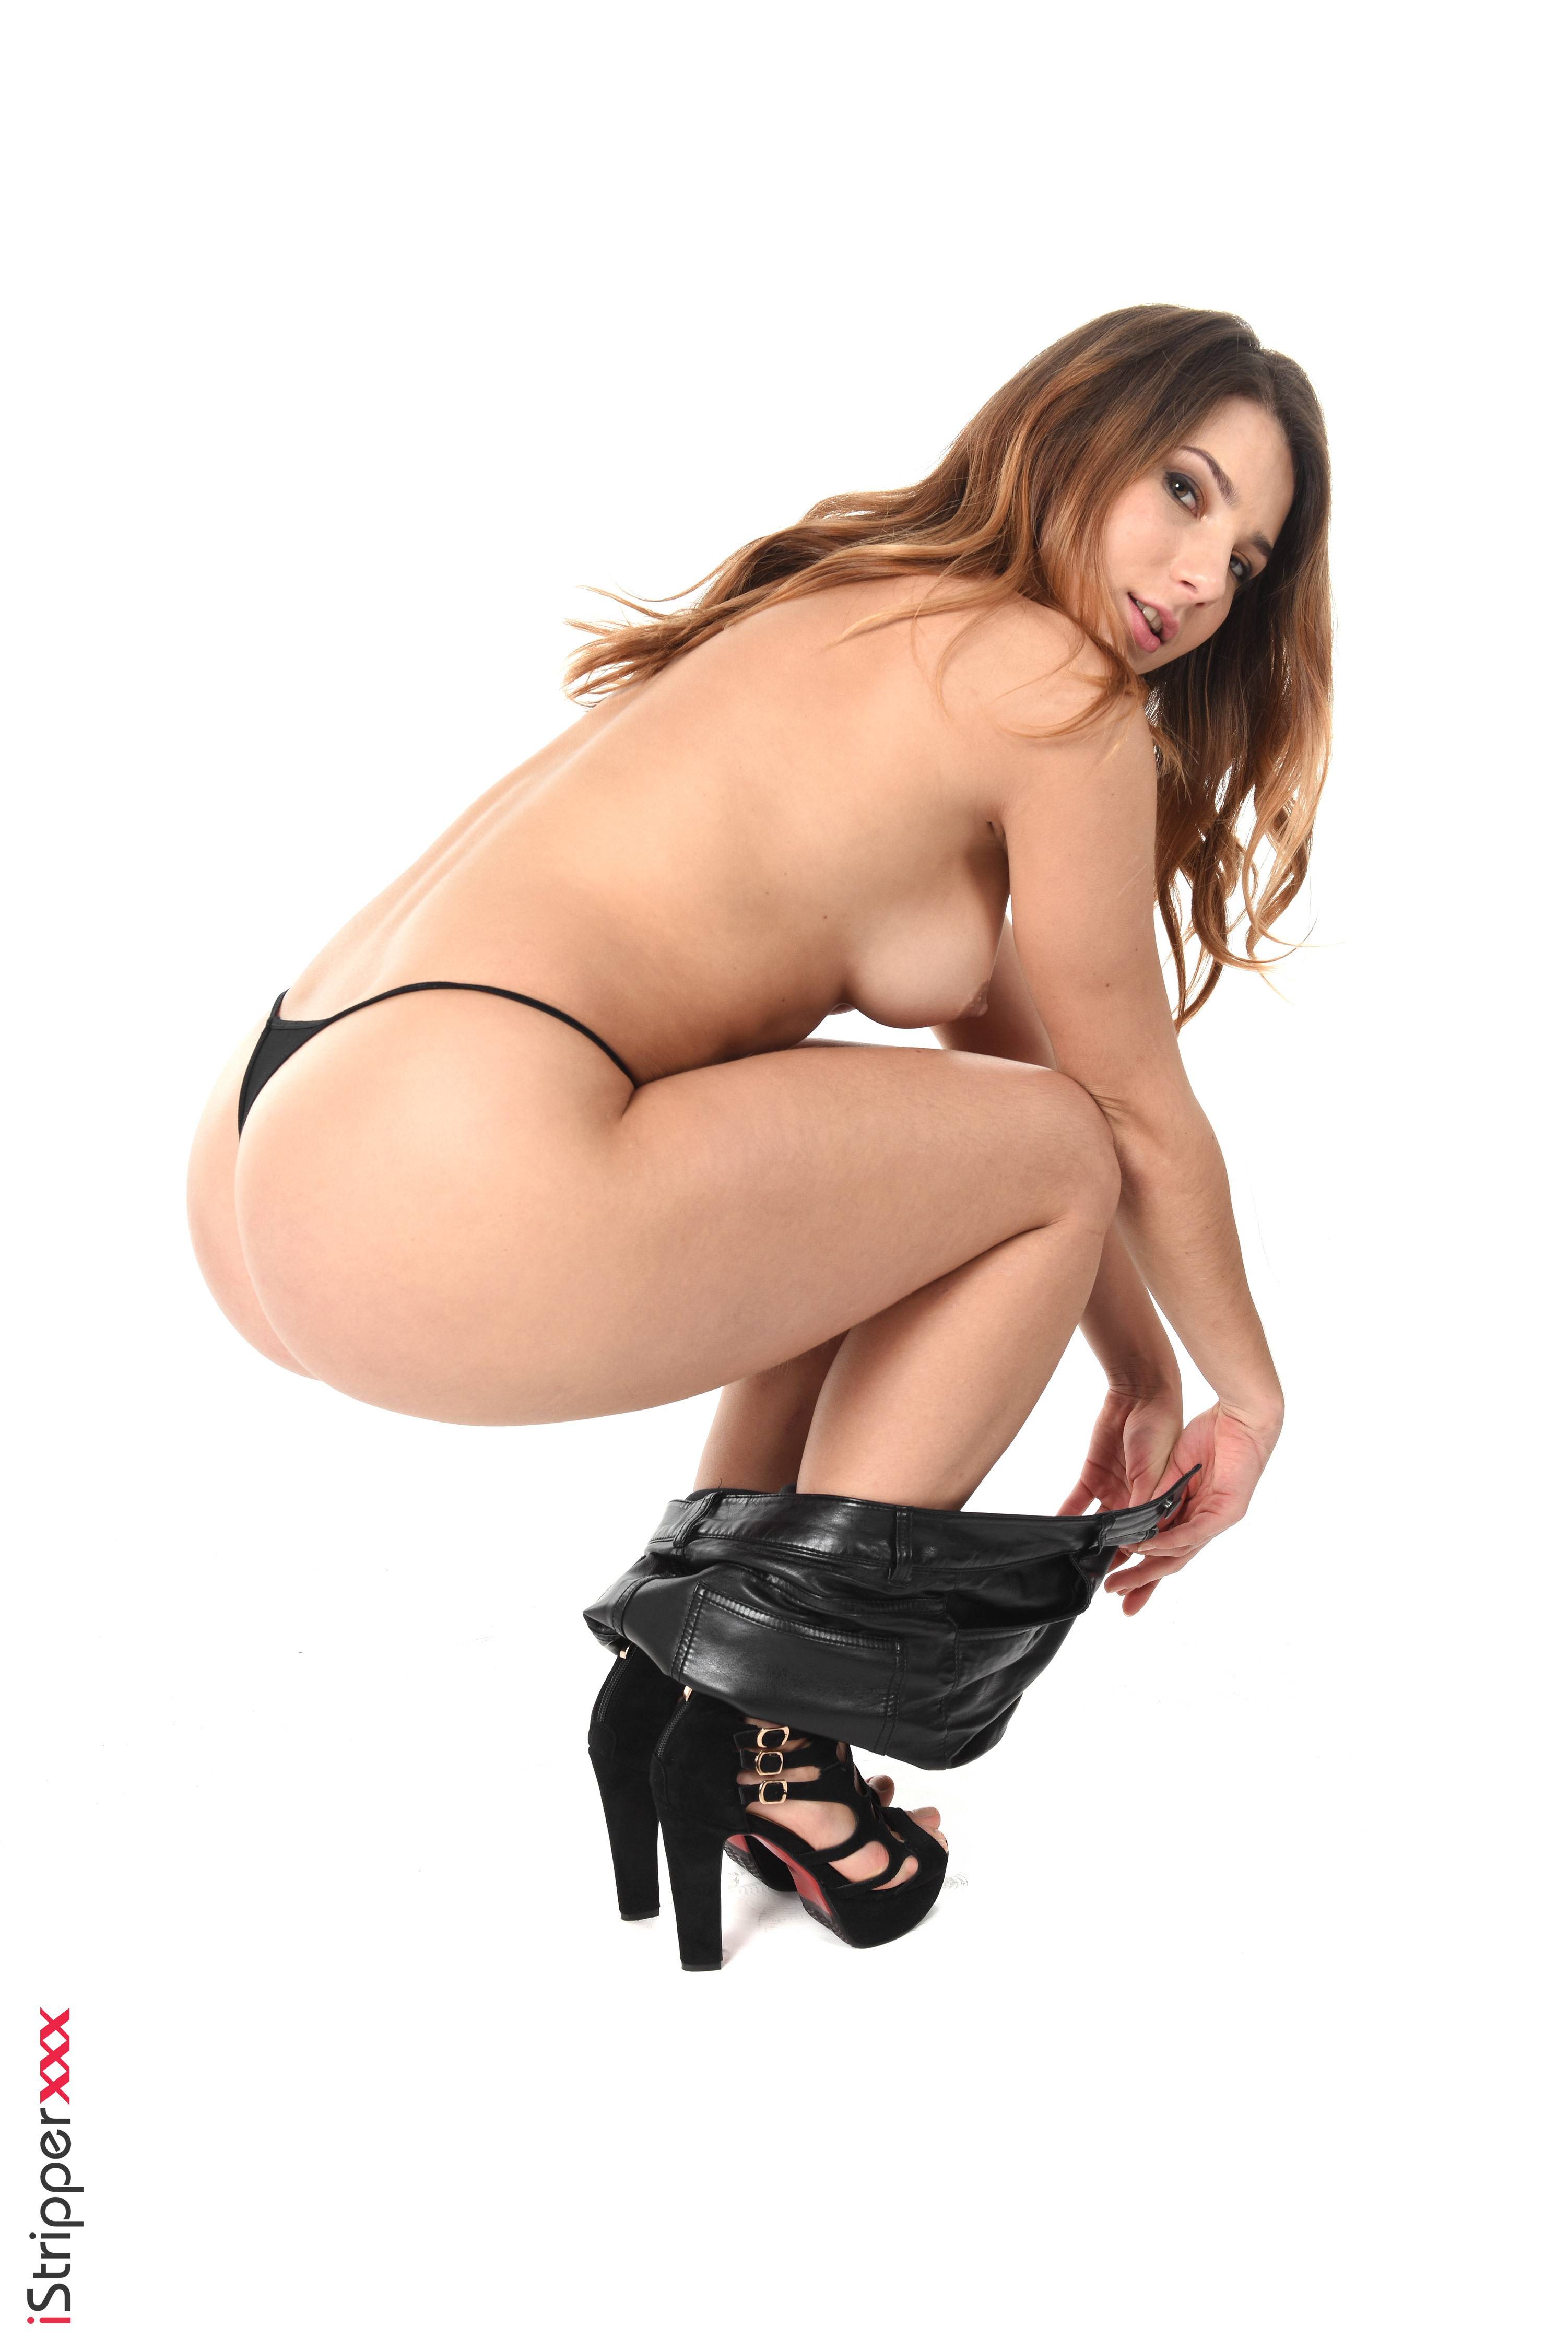 shyla jennings does a sexy striptease and gets on the fllor